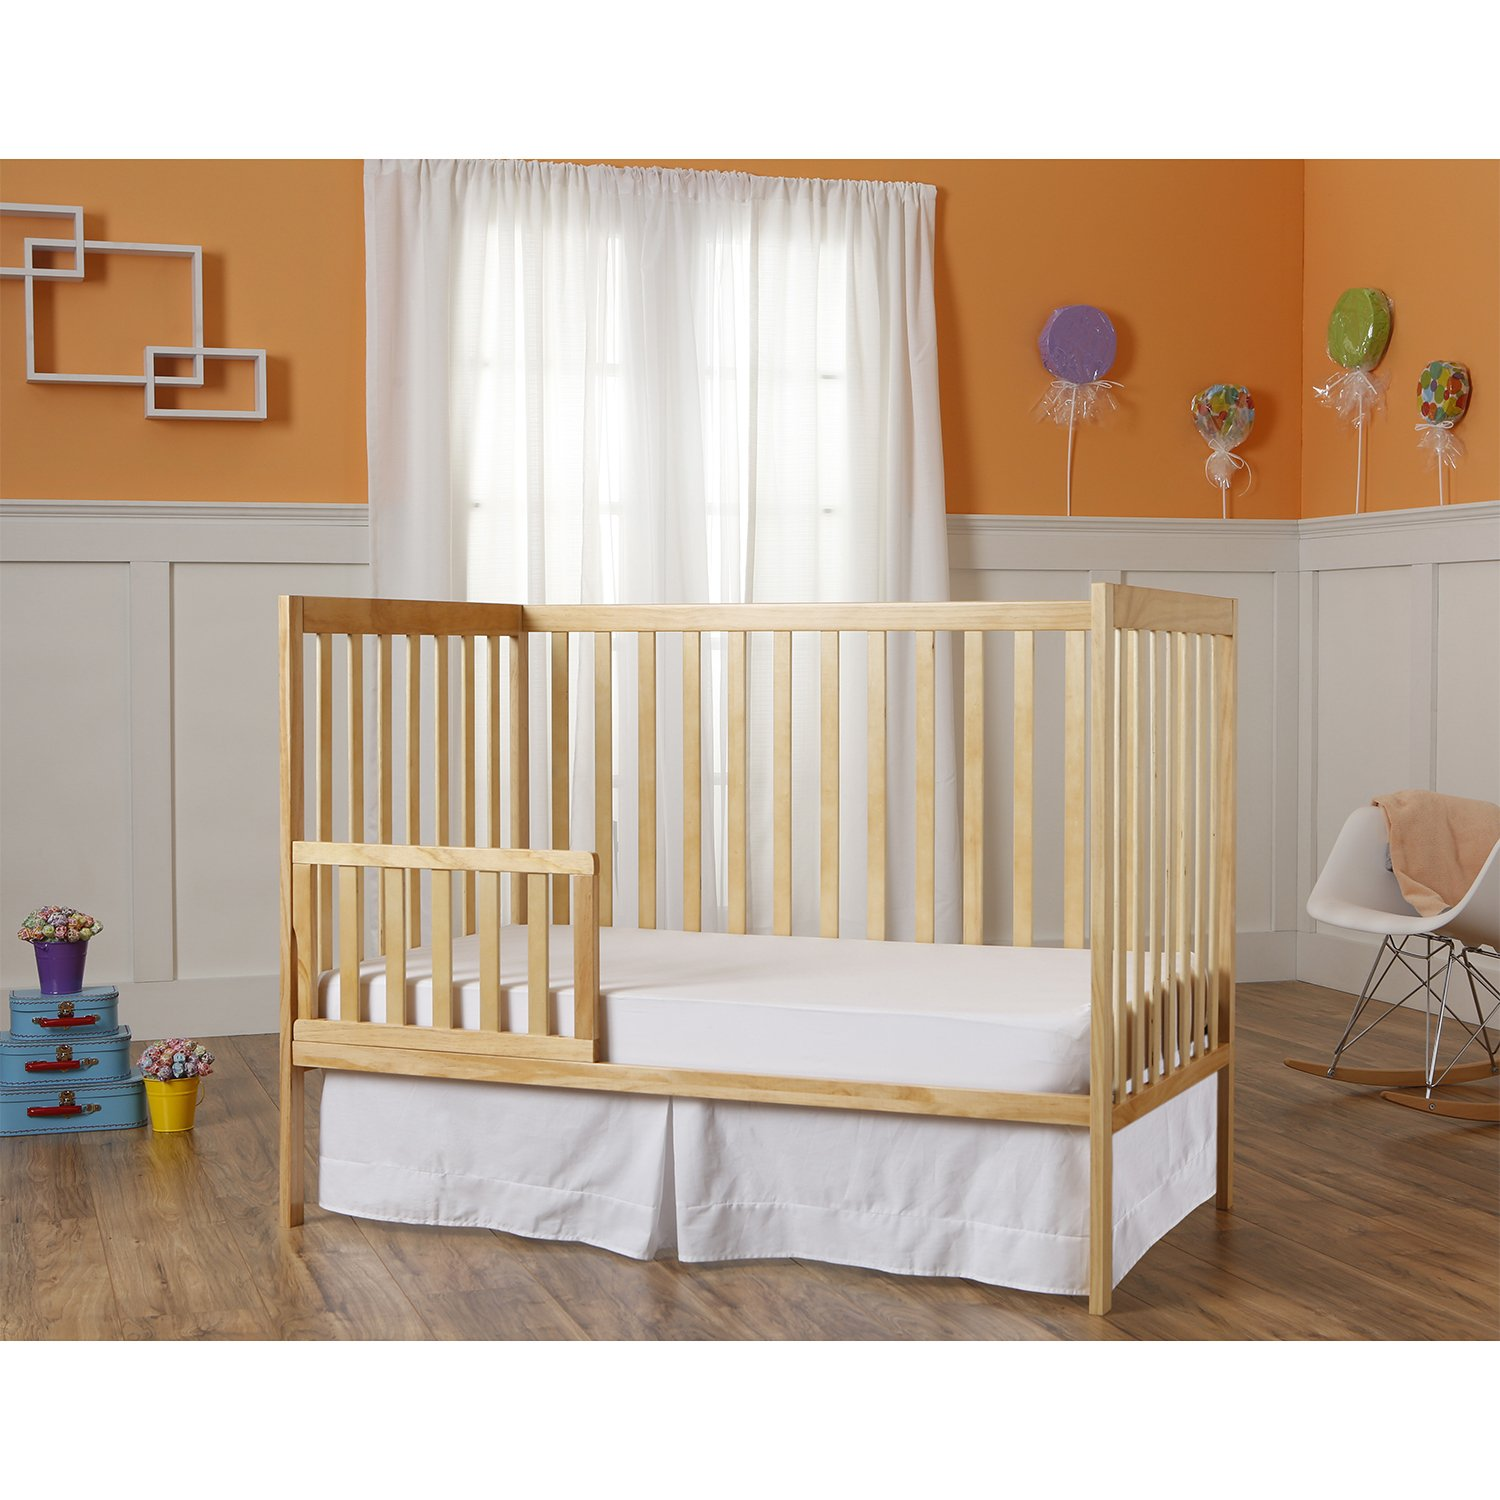 Dream On Me Synergy 5-in-1 Convertible, Crib, Natural by Dream On Me (Image #5)